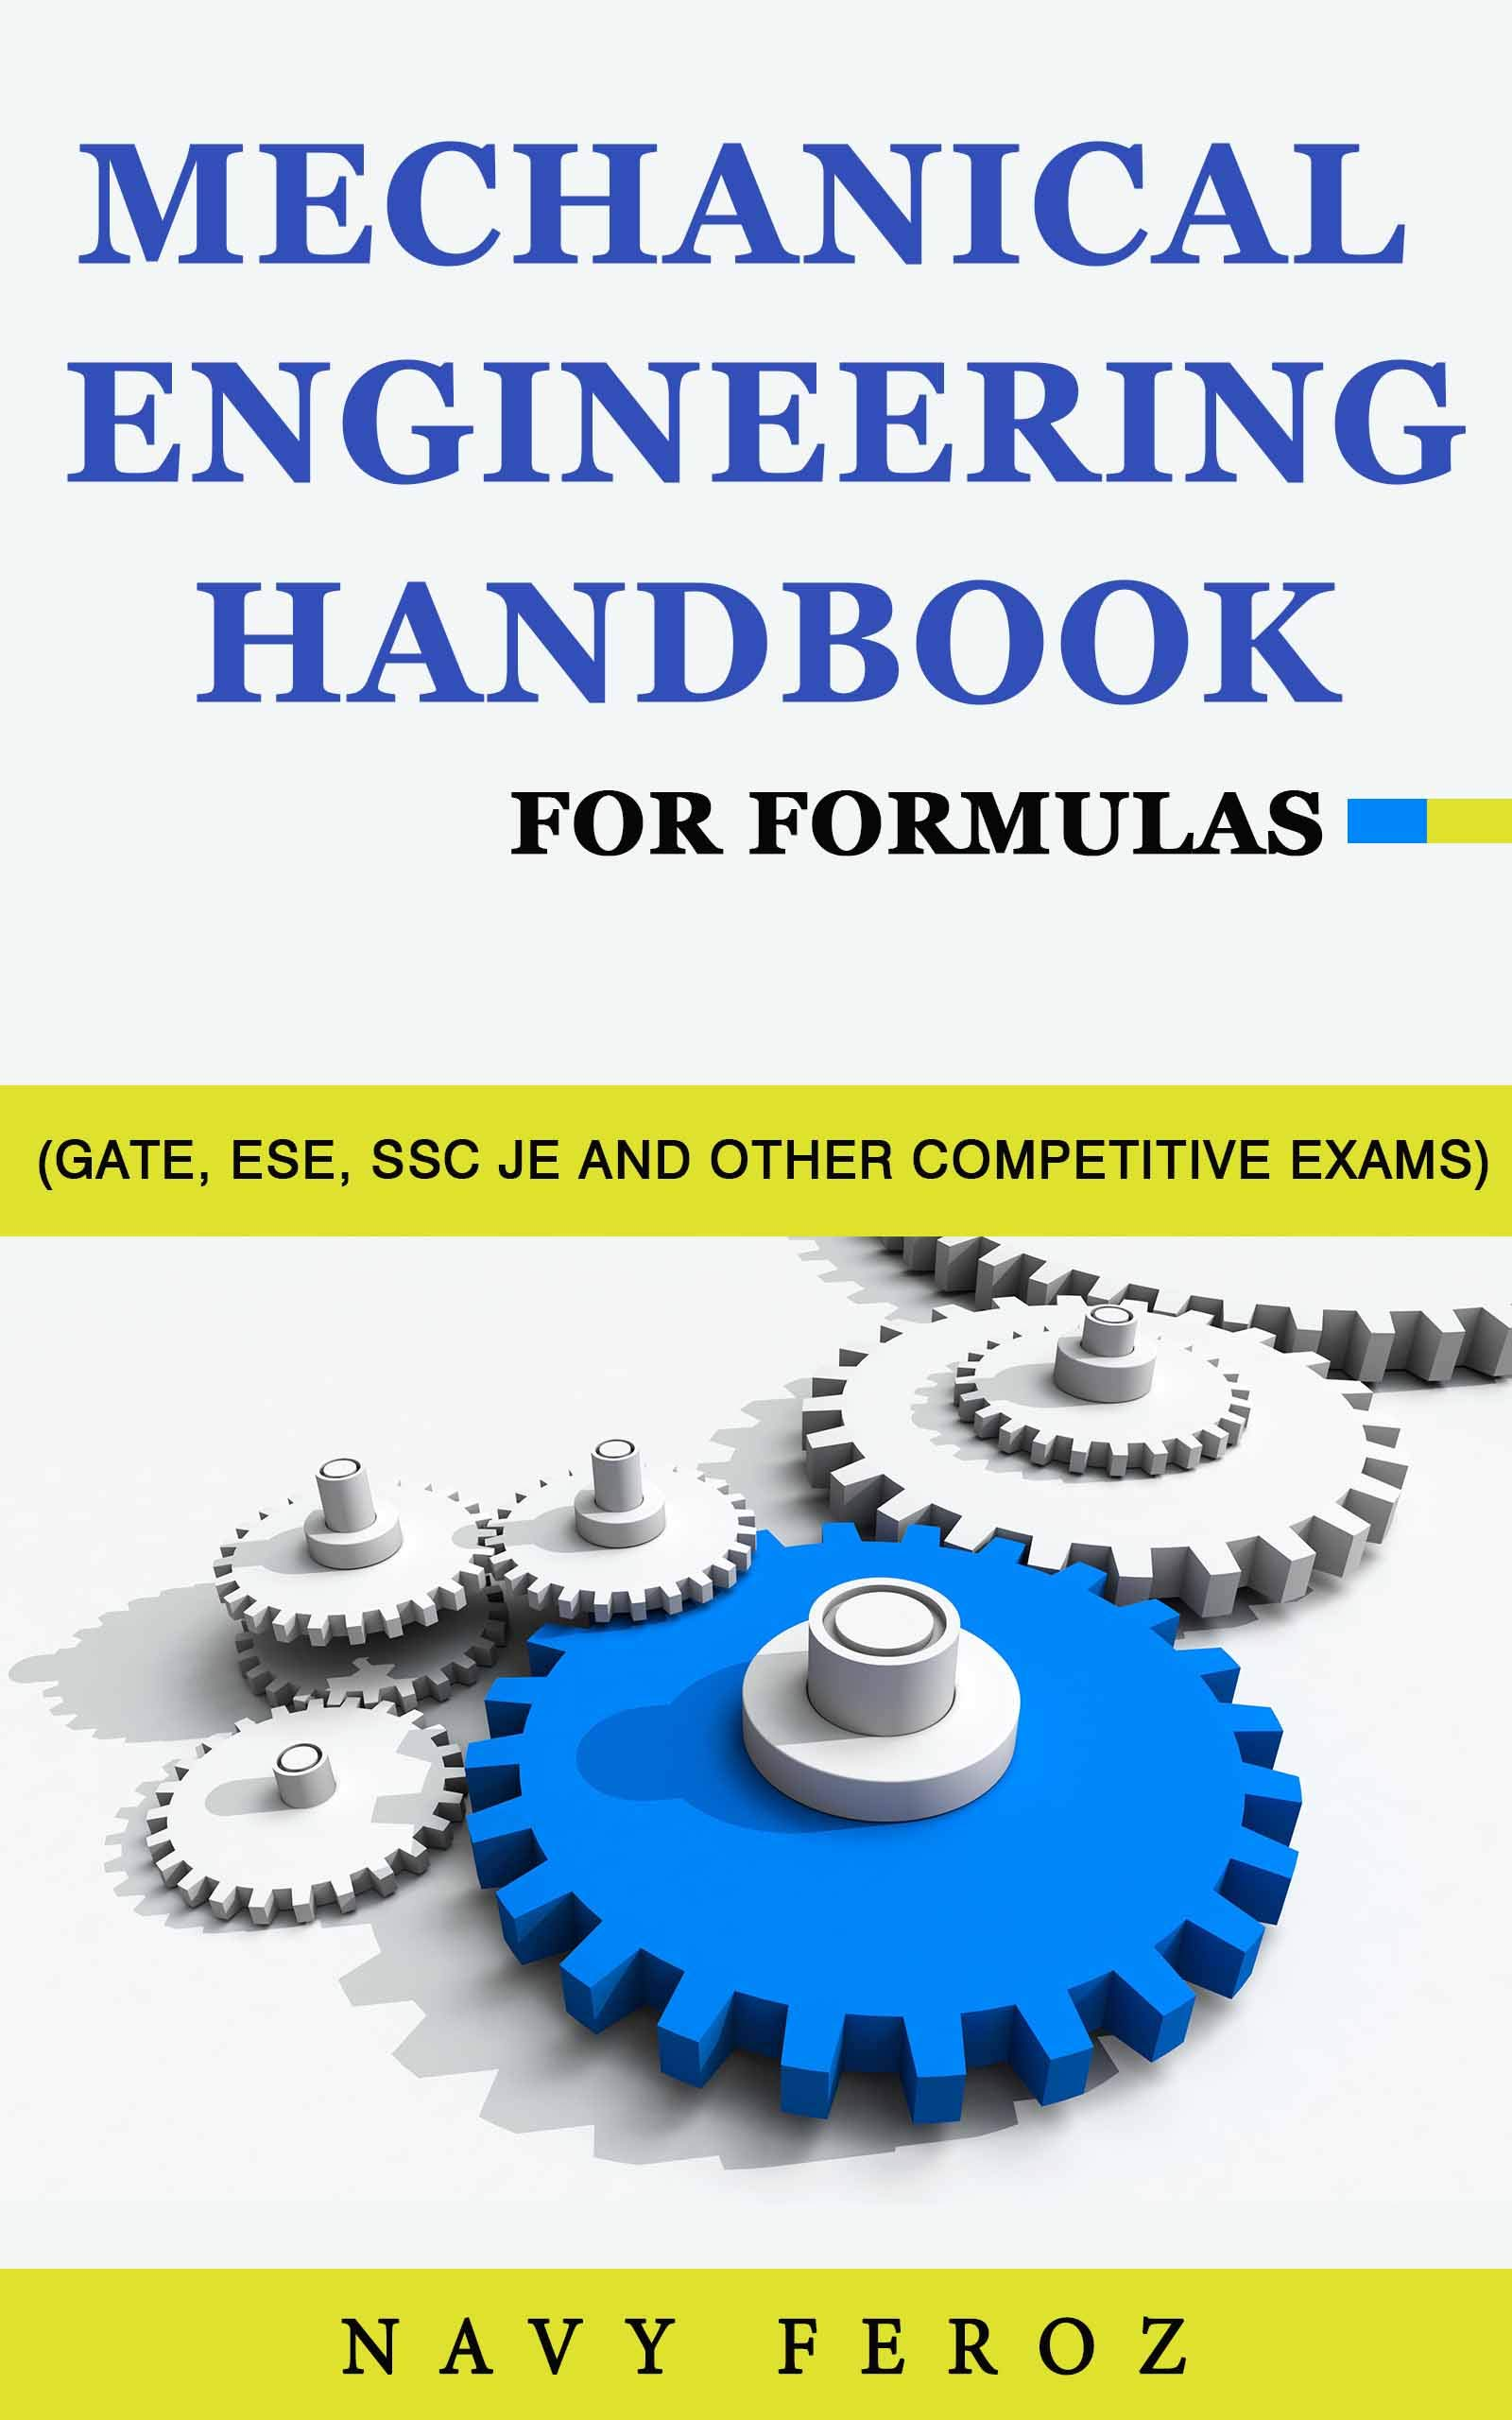 Mechanical Engineering: Handbook For Formulas (GATE ESE SSC JE and other Competitive Exams) (English Edition)